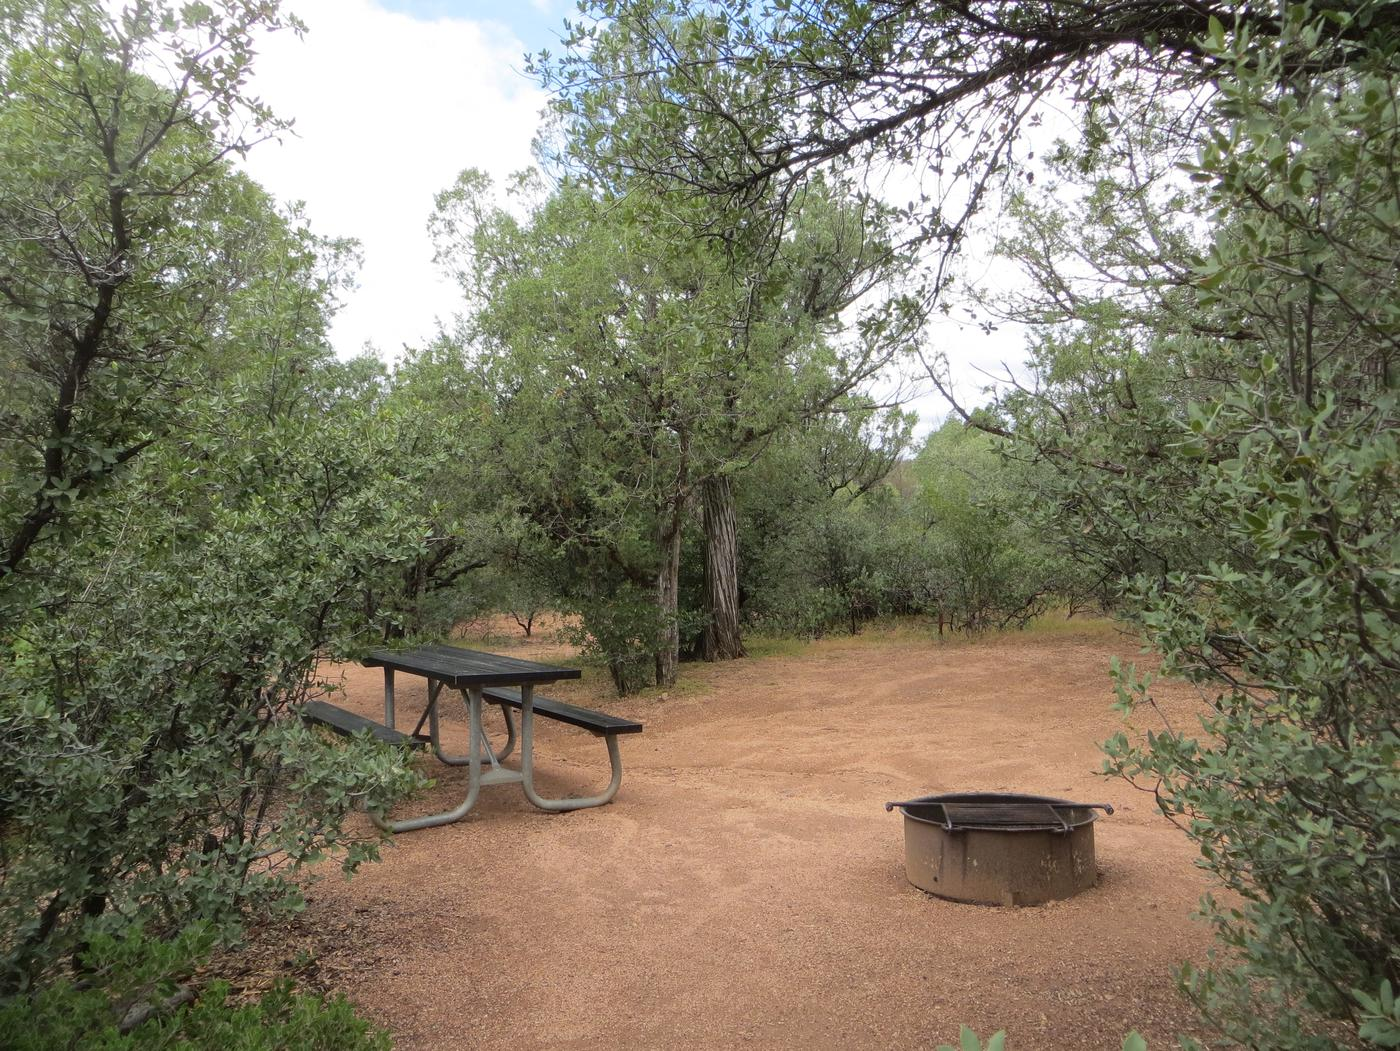 Houston Mesa, Mountain Lion Loop site #15 featuring the wooded camping space, fire pit, and picnic table.